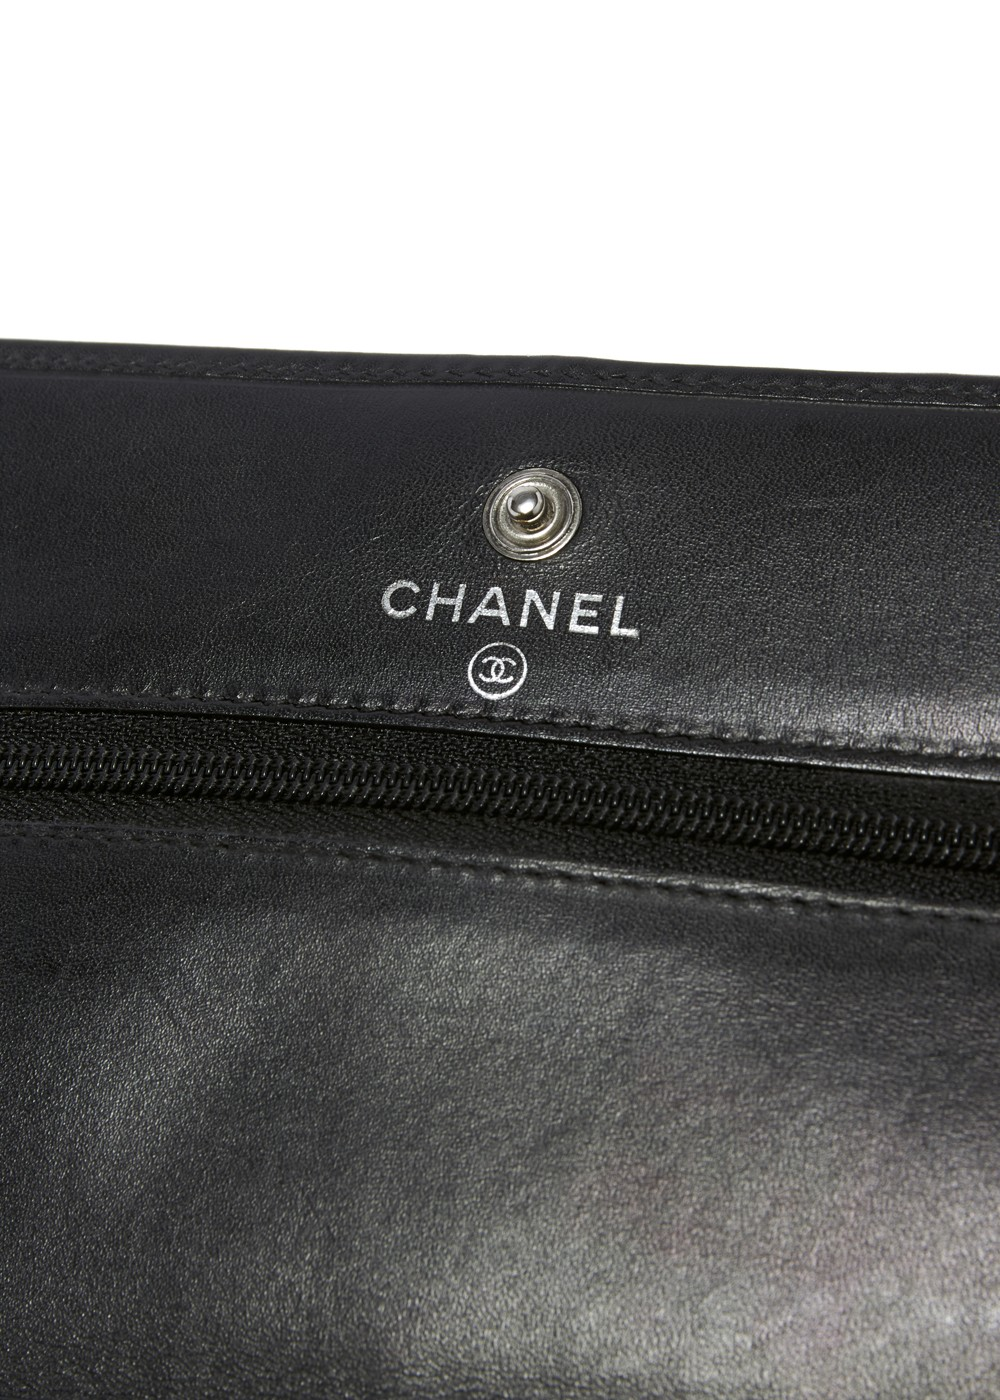 CHANEL A46646 チェーンウォレット エナメルココ×黒|OTHER|ショルダーバッグ|VINTAGE BRAND COLLECTION_(I)